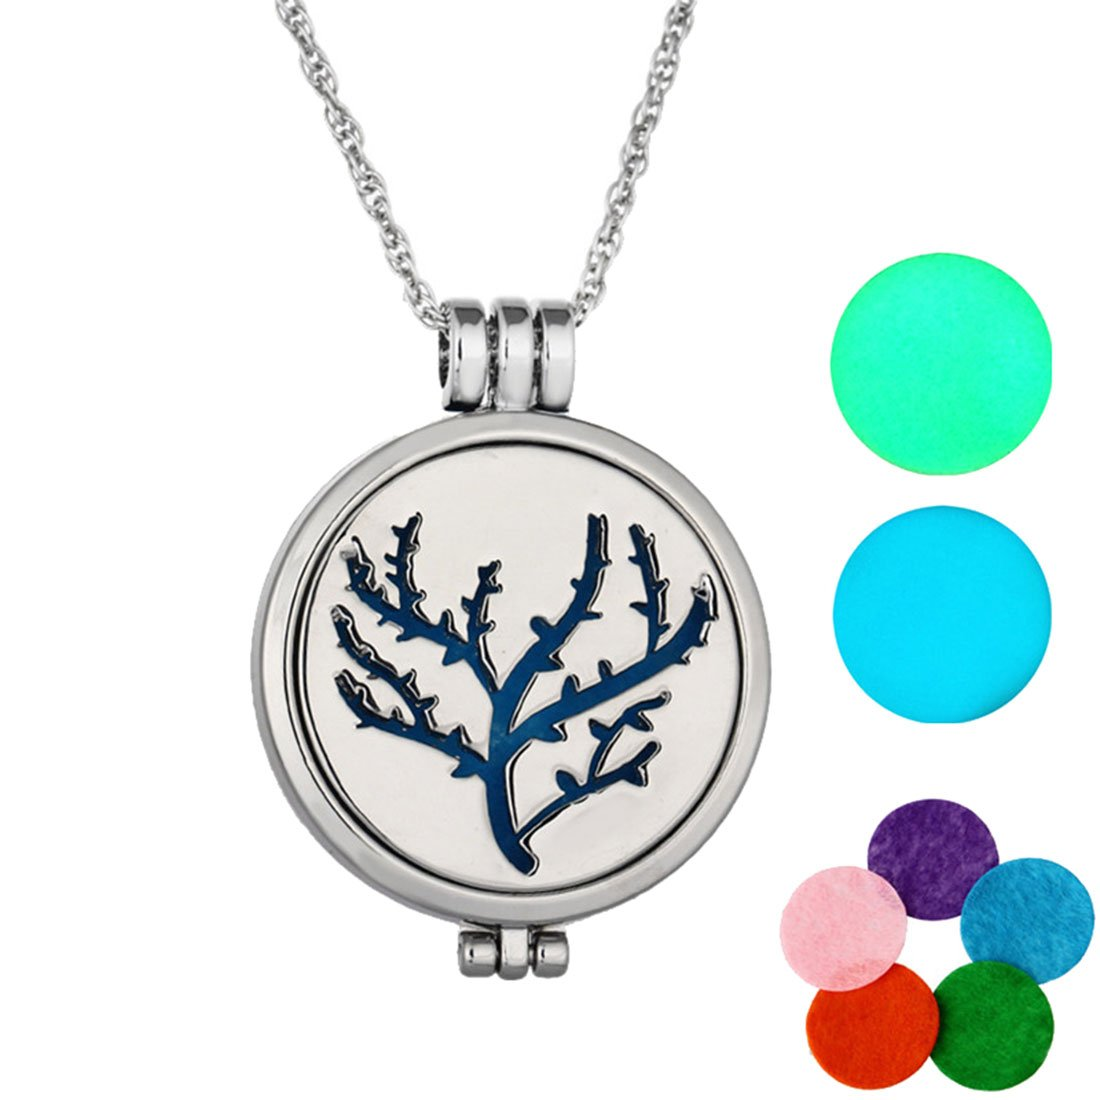 MJARTORIA Tree of Lifeグローin theダークAromatherapy Essential Oil Diffuserロケットペンダントネックレス B06WWGRN3L シルバー